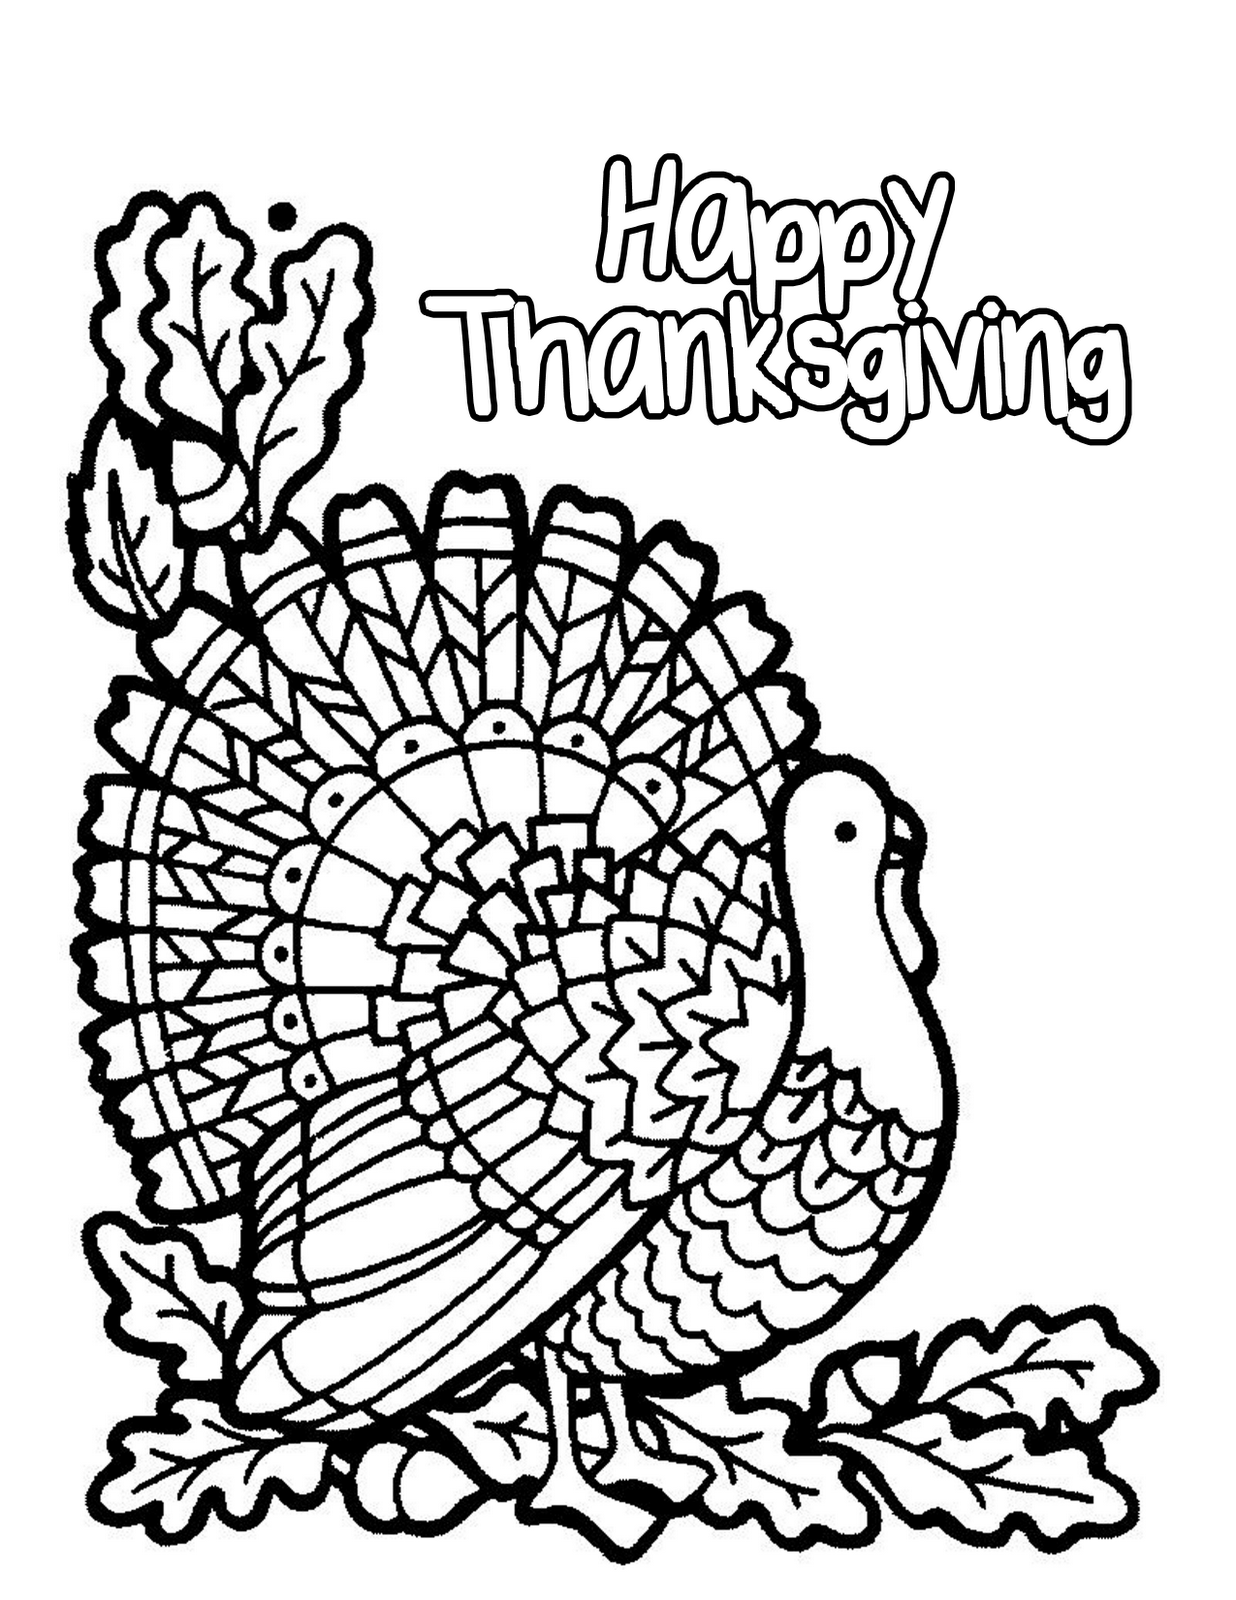 Happy thanksgiving coloring pages to download and print for Free printable thanksgiving coloring pages worksheets